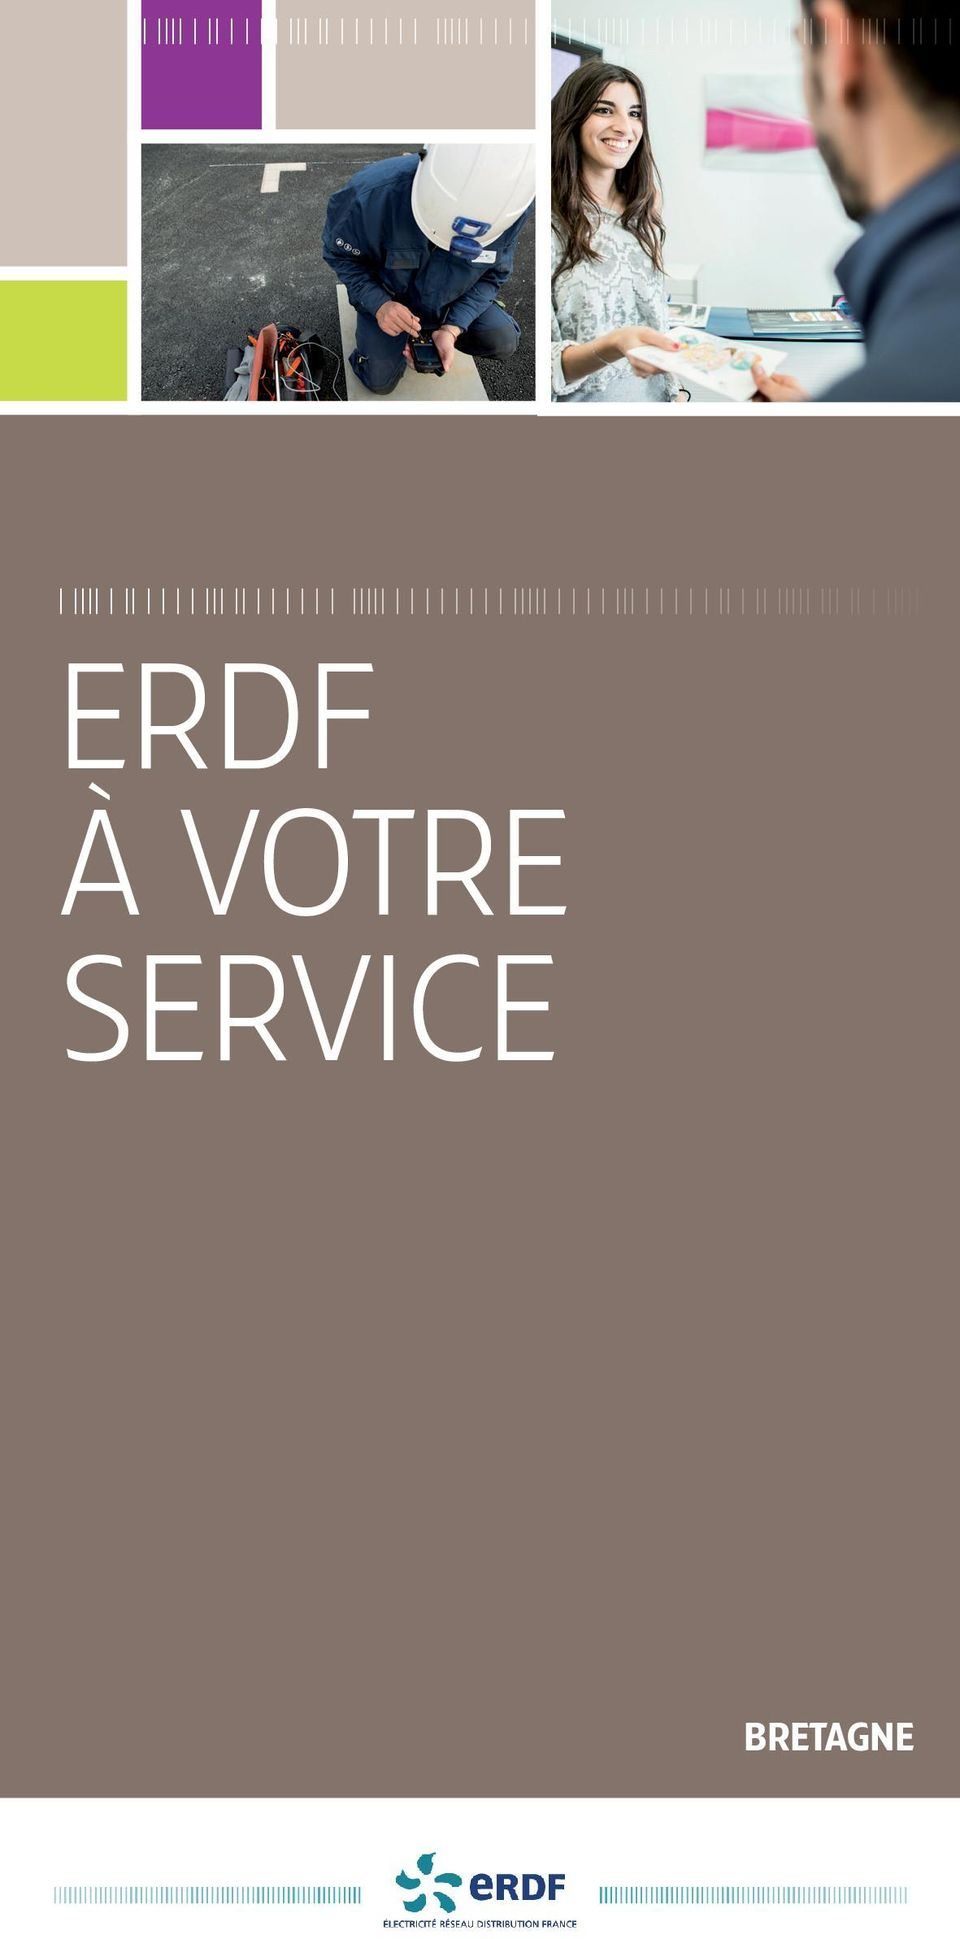 erdf votre service bretagne pdf. Black Bedroom Furniture Sets. Home Design Ideas